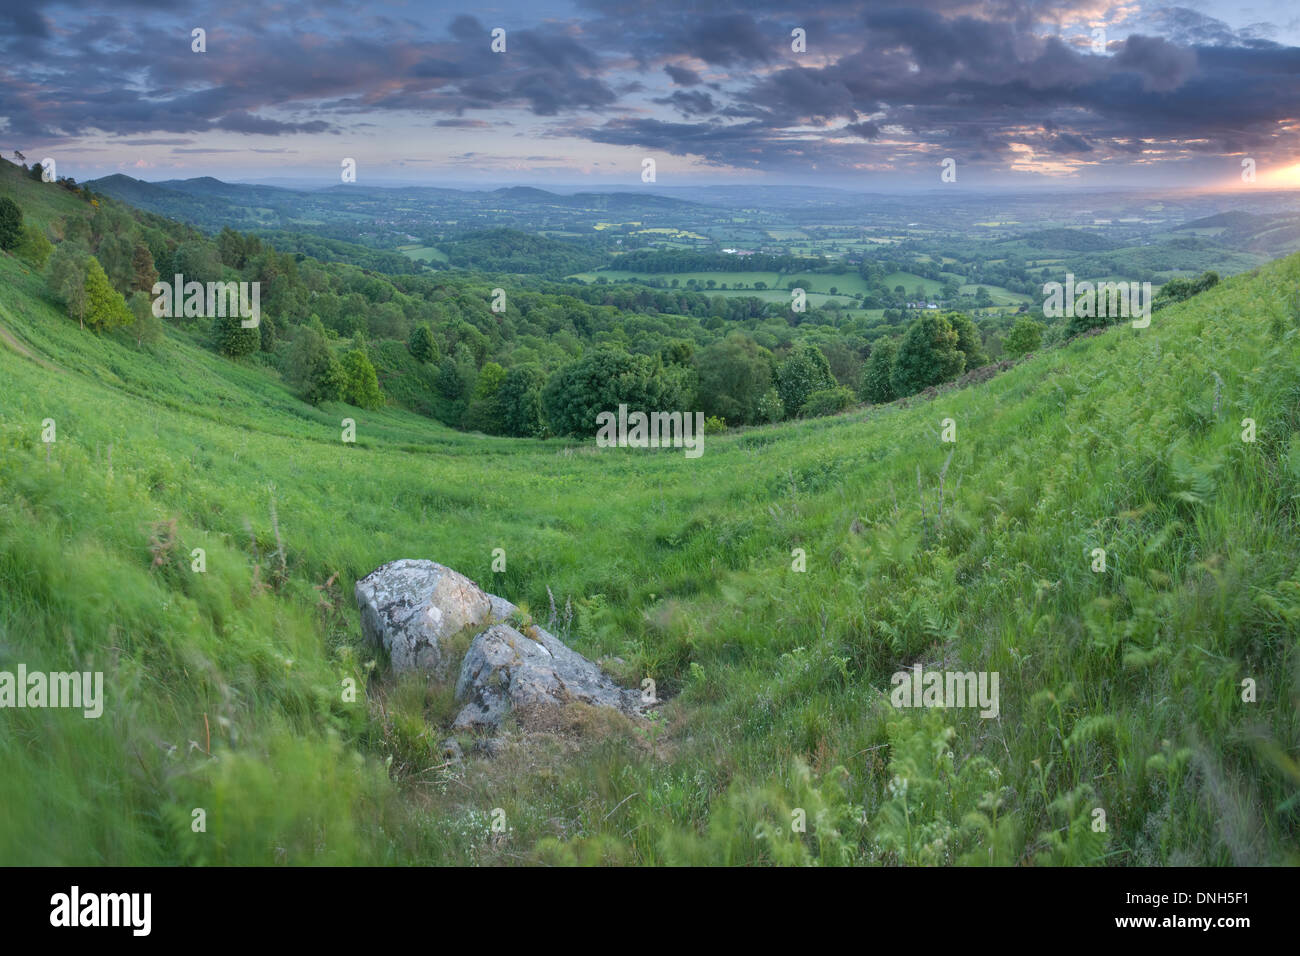 A Rock amongst the Bracken and Foxgloves in the valley between Summer Hill and the Worcestershire Beacon on the Stock Photo